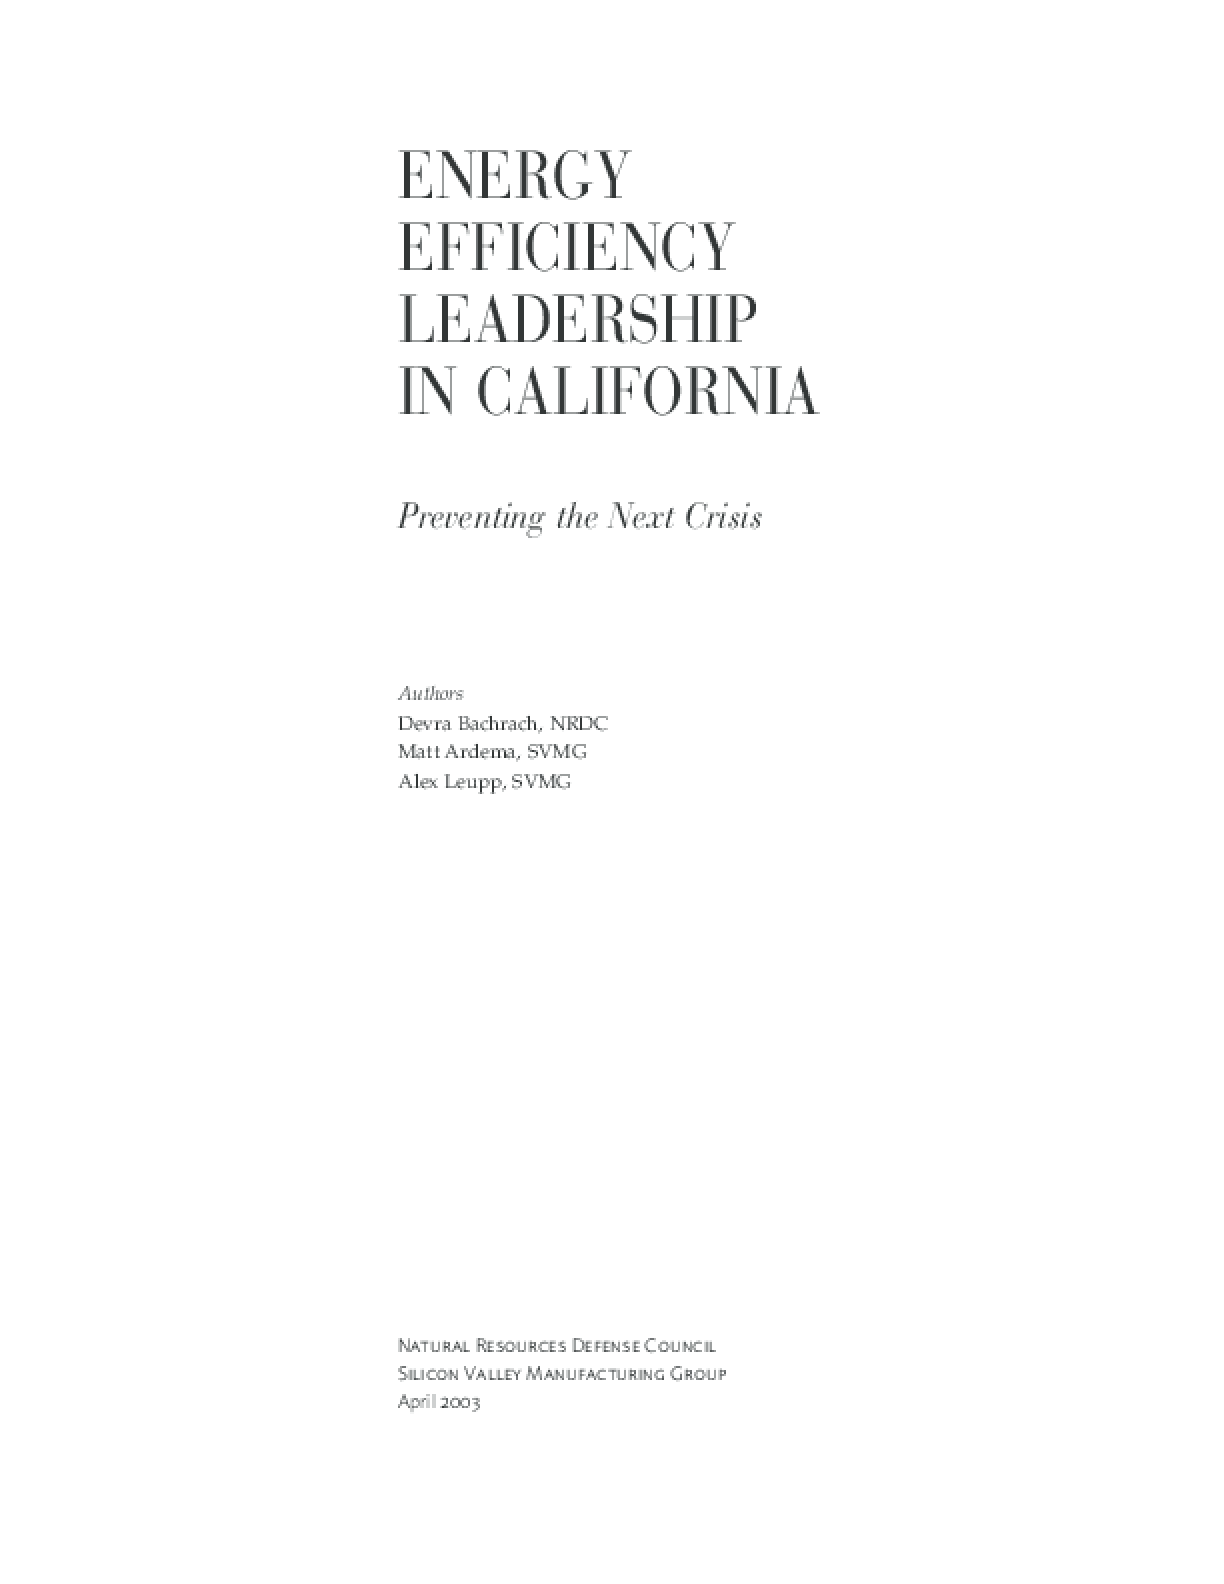 Energy Efficiency Leadership in California: Preventing the Next Crisis